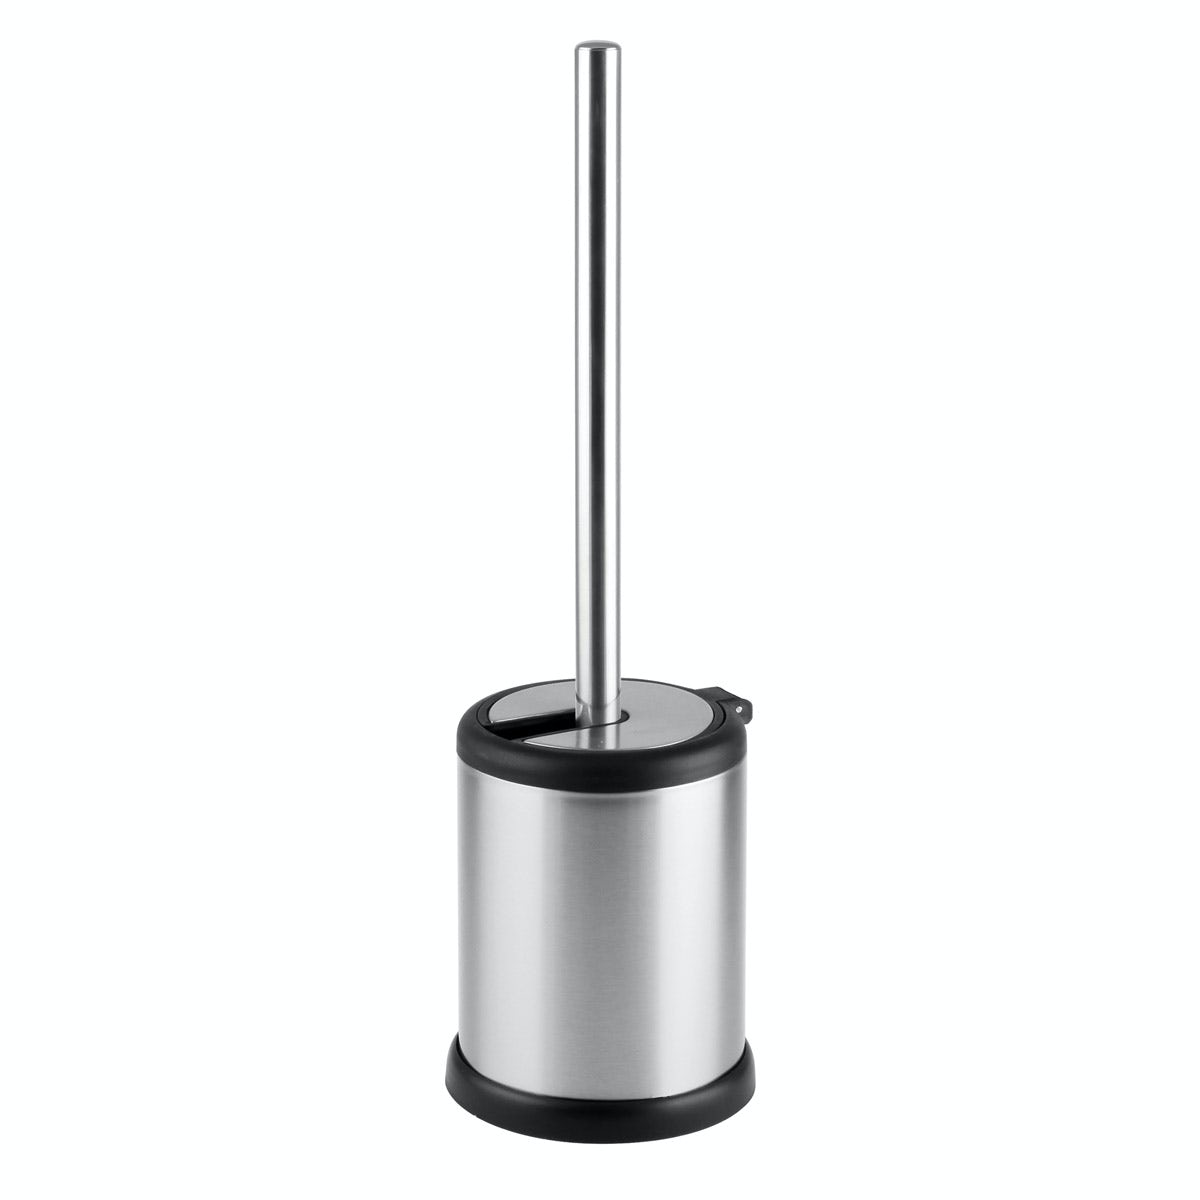 Showerdrape Aero stainless steel satin toilet brush